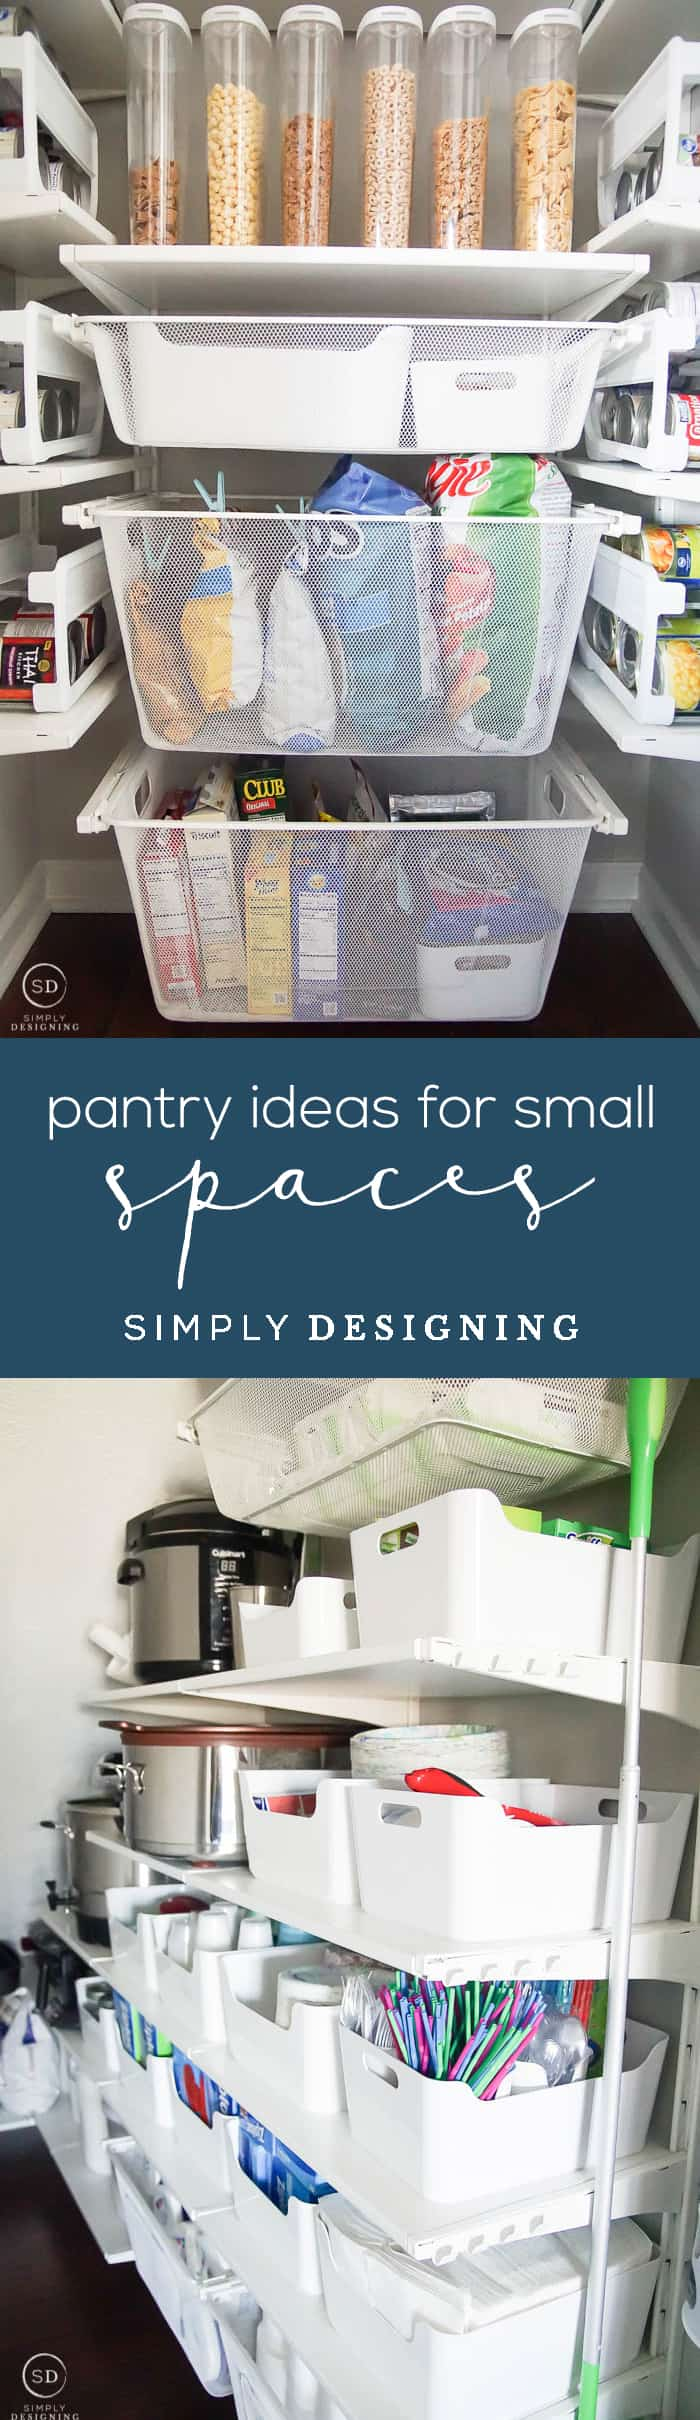 How to Organize a Closet Under the Stairs and DIY Pantry Organization Ideas - pantry ideas for small spaces